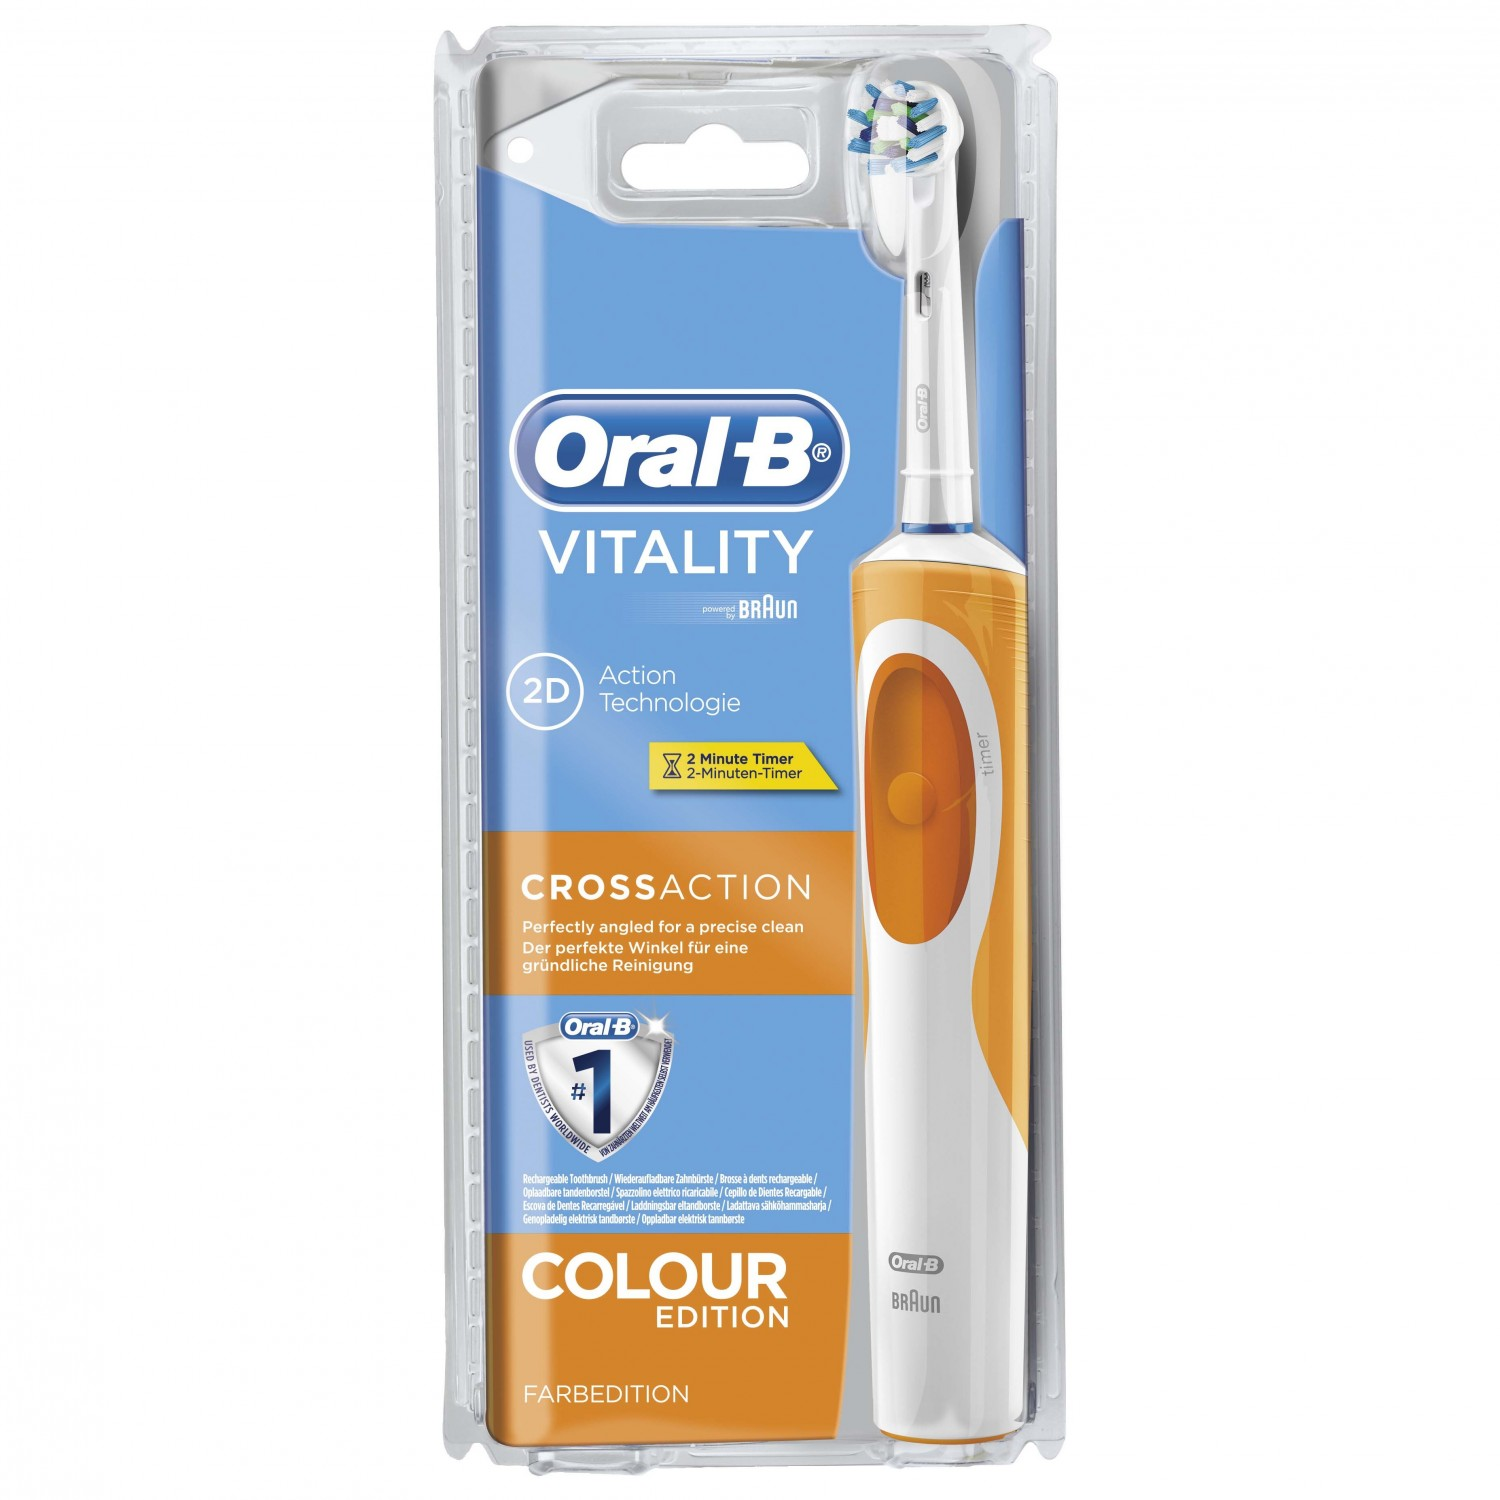 Oral B cepillo dental electrico vitality cross action naranja blister blister